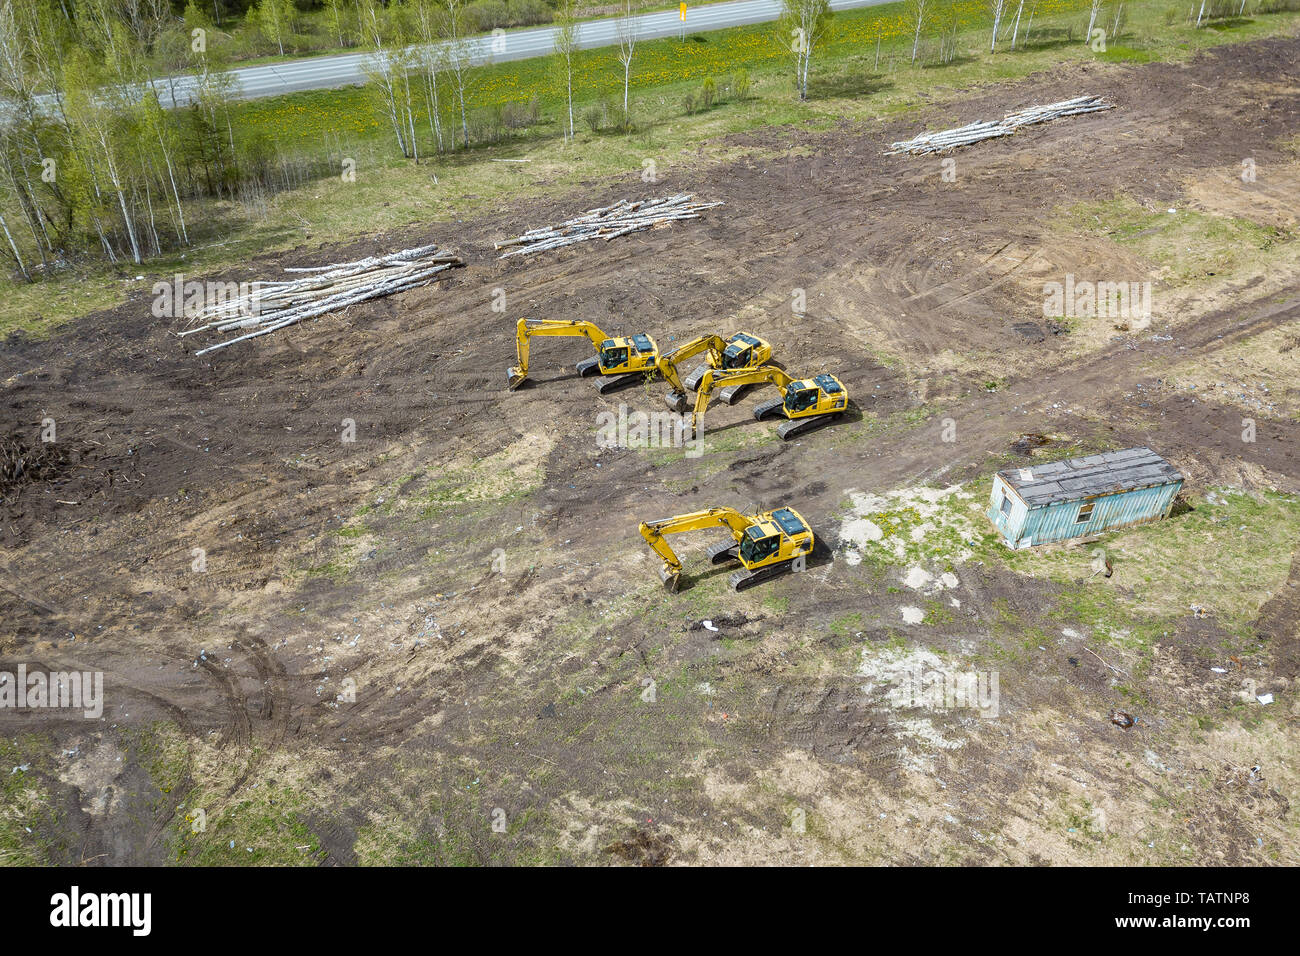 Aerial side view of four yellow crawler excavators standing on ground near the construction site and waiting for the working day to start digging the  - Stock Image